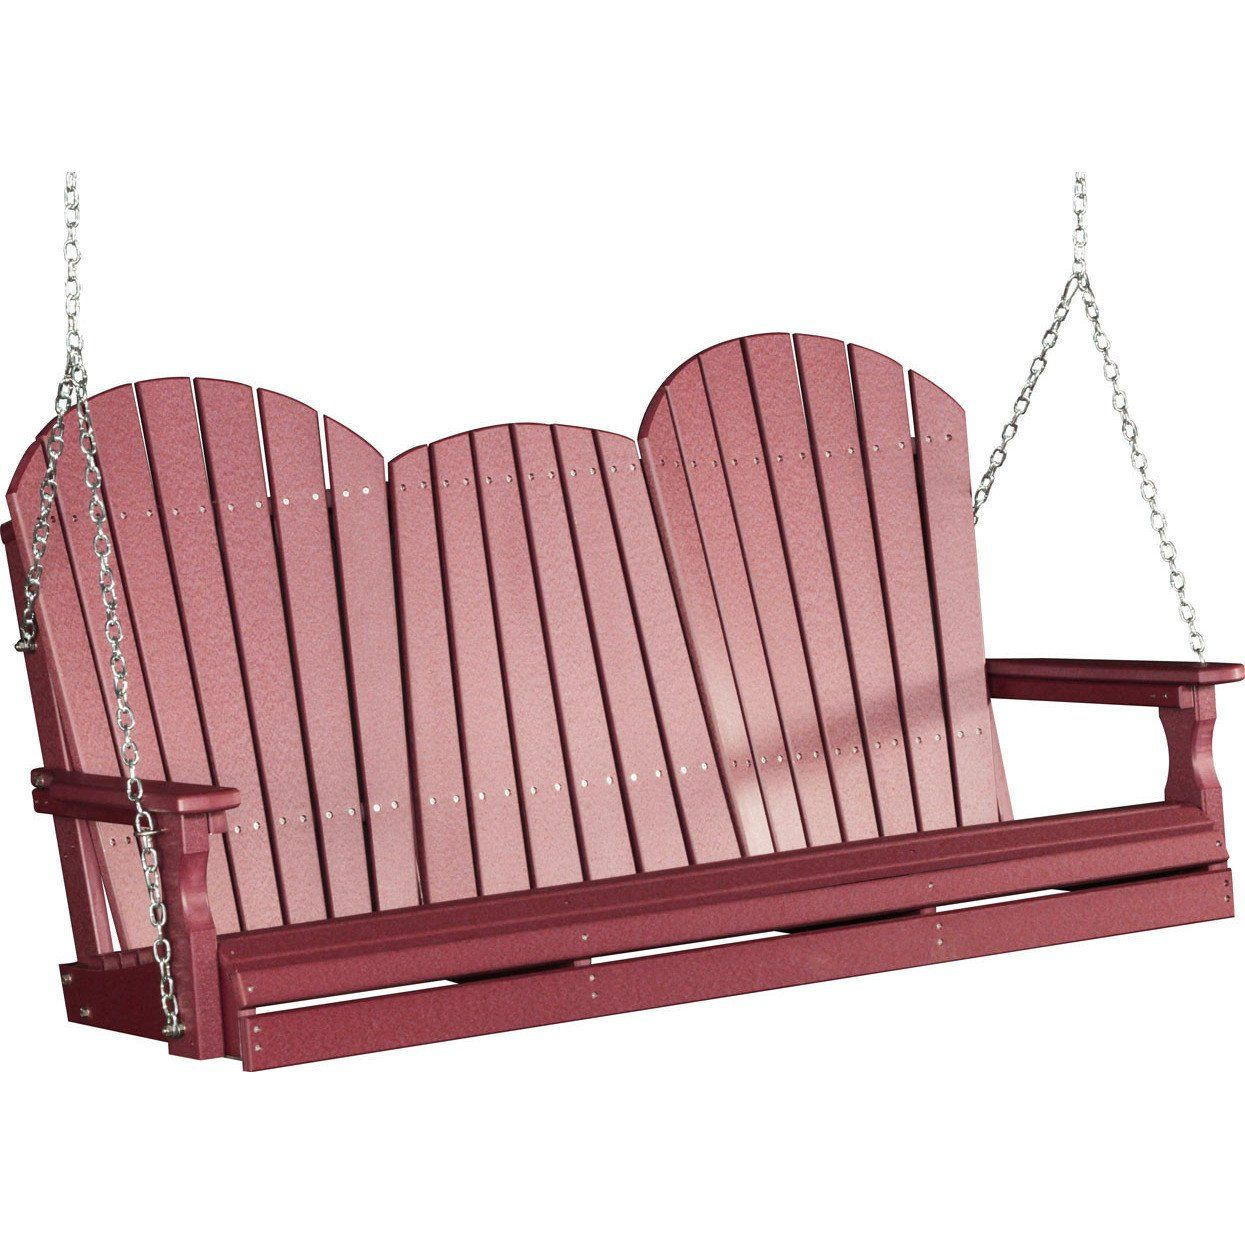 Patio Cost Per Square Foot Canada: LuxCraft Adirondack 5ft. Recycled Plastic Porch Swing With